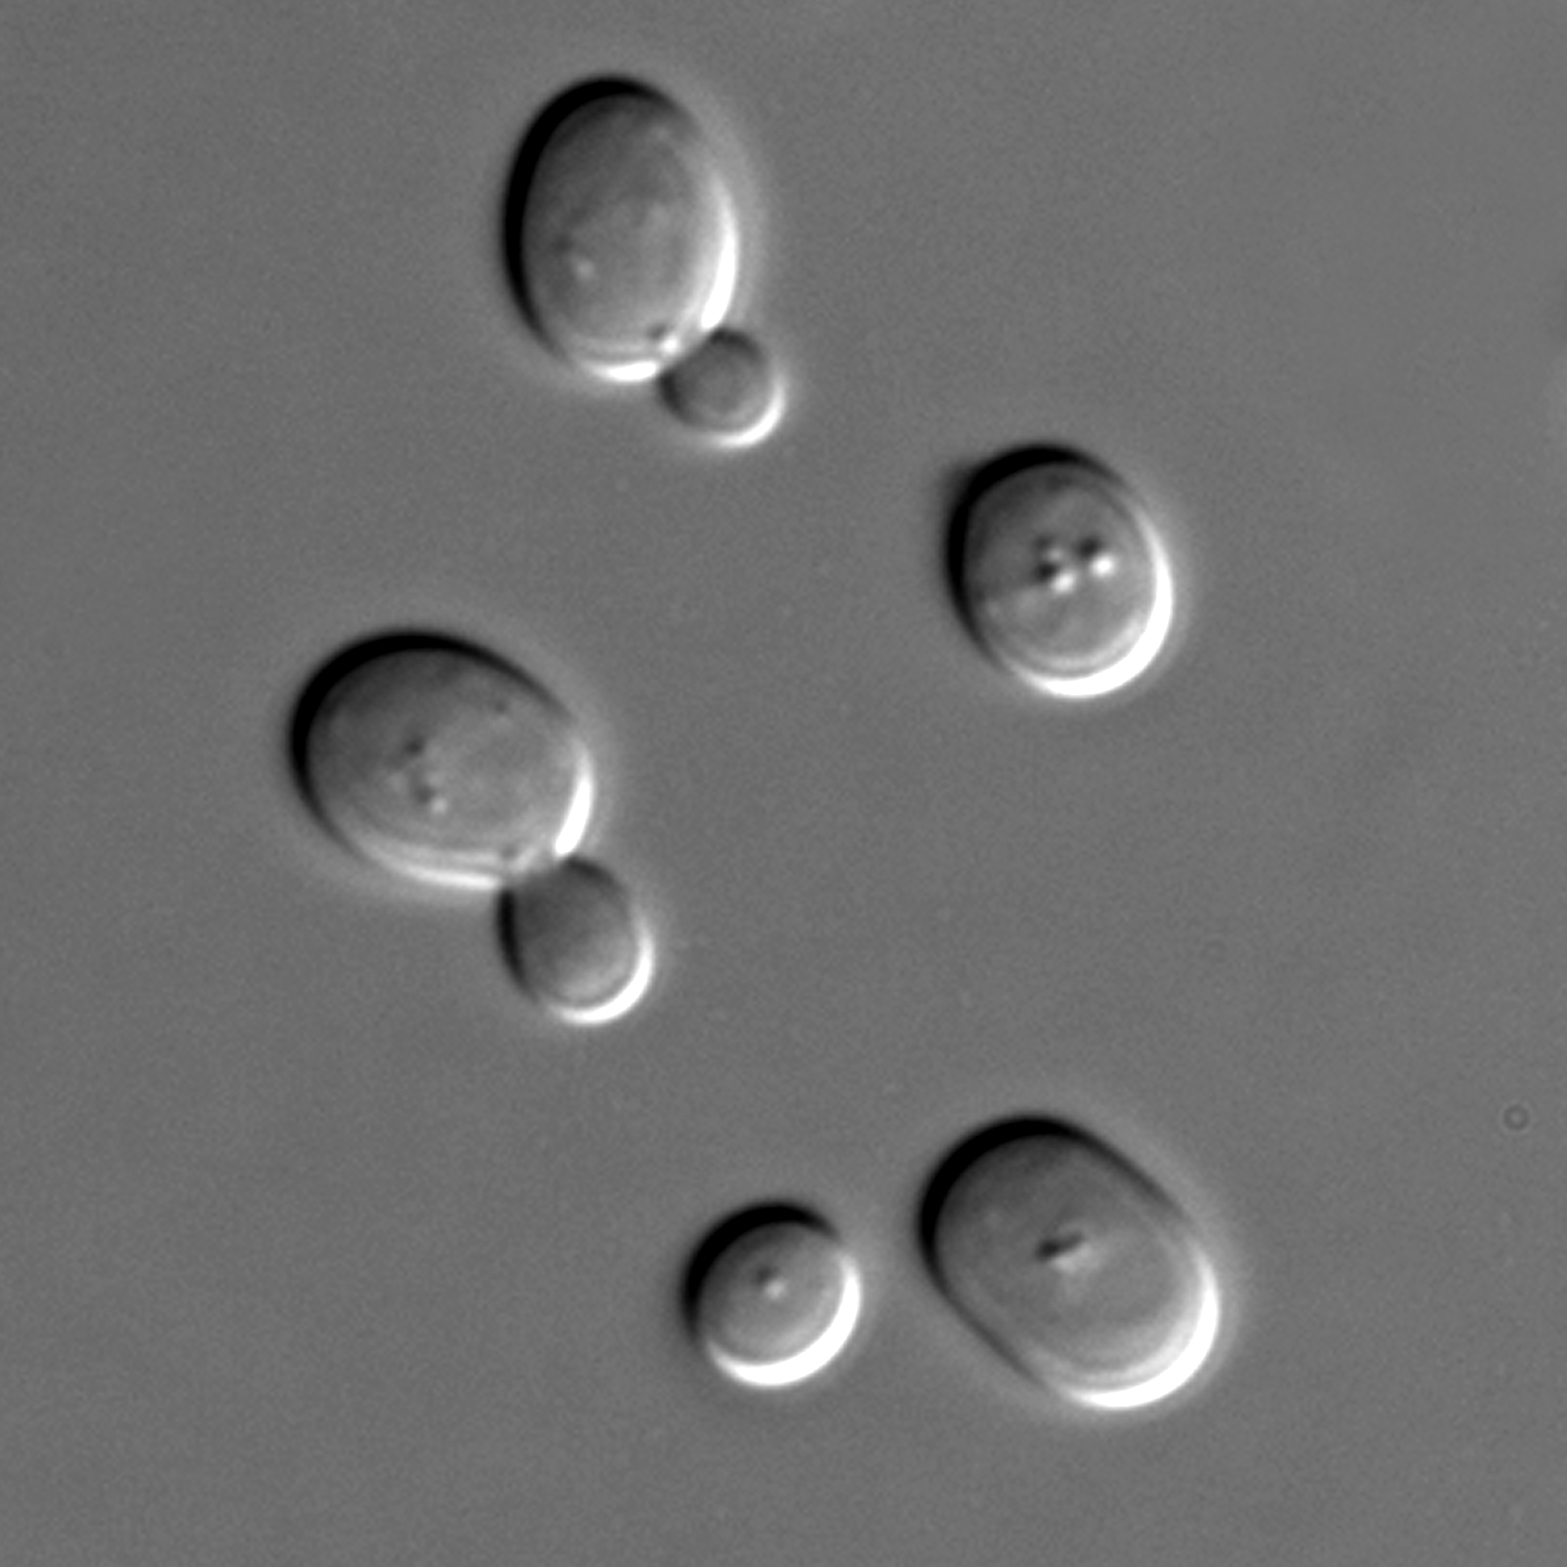 Saccharomyces cerevisiae cells in DIC microscopy.